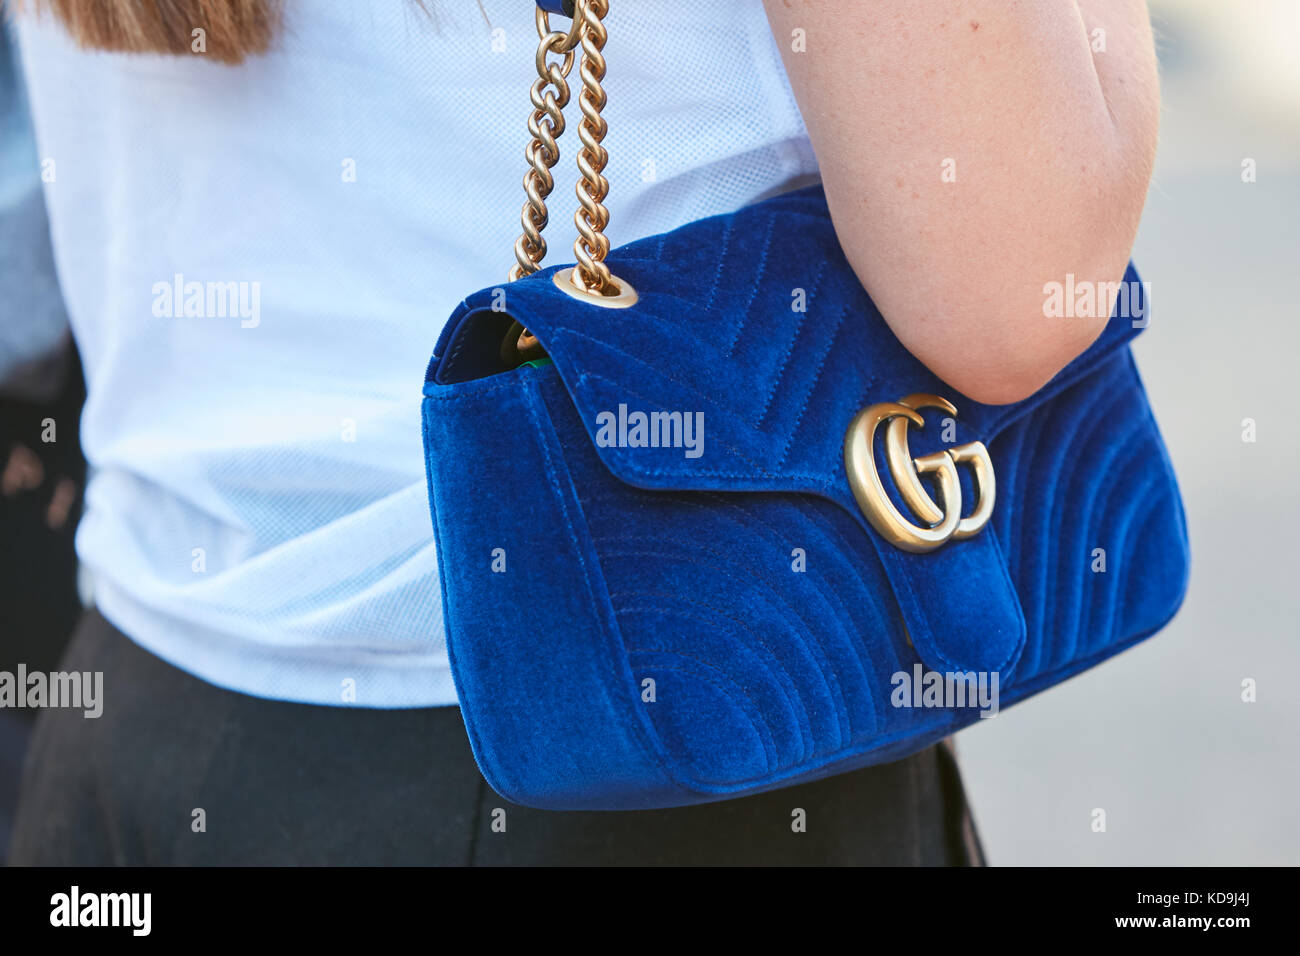 6a8b471b4 MILAN - SEPTEMBER 21: Woman with Gucci blue velvet bag with golden chain  before Prada fashion show, Milan Fashion Week street style on September 21,  2